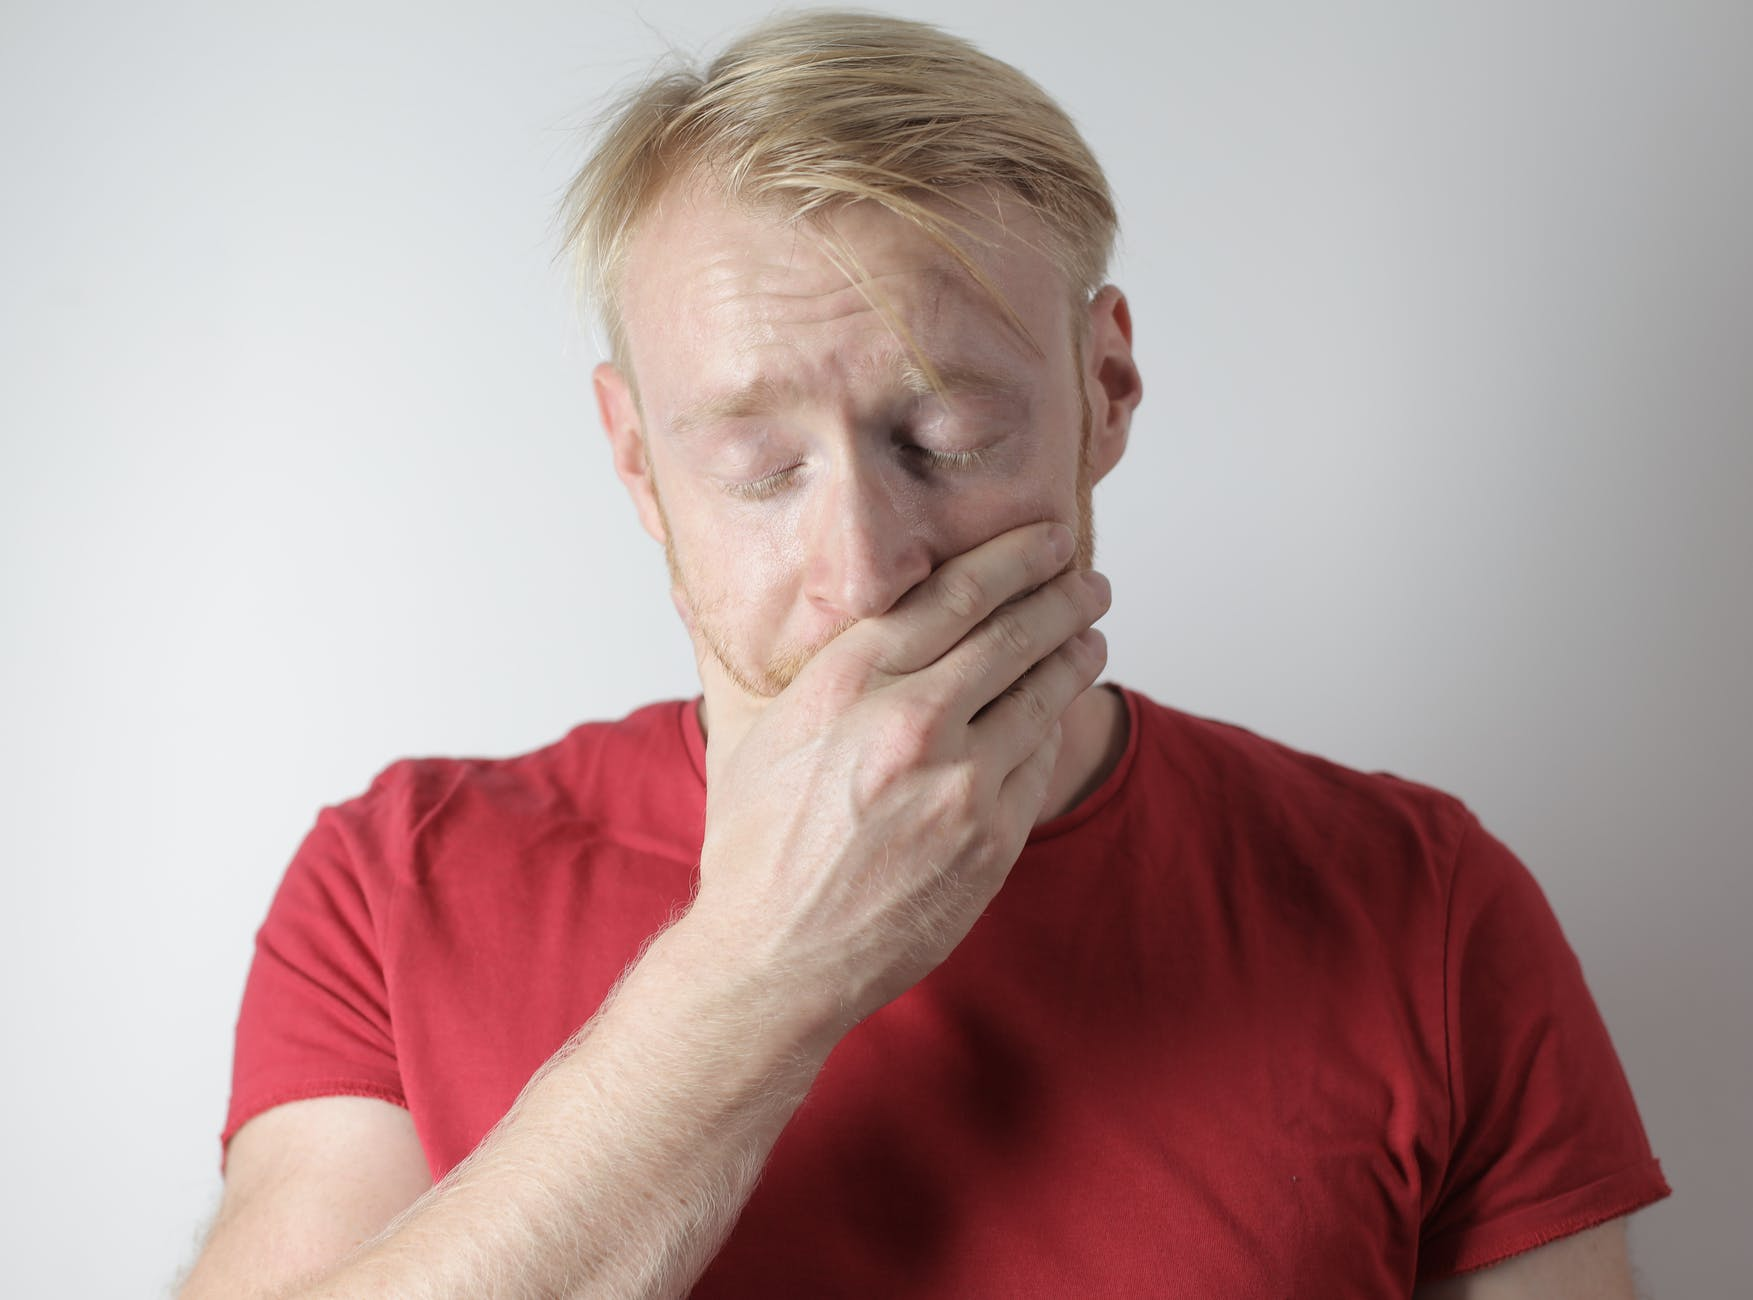 What to do when you have oral pain and discomfort